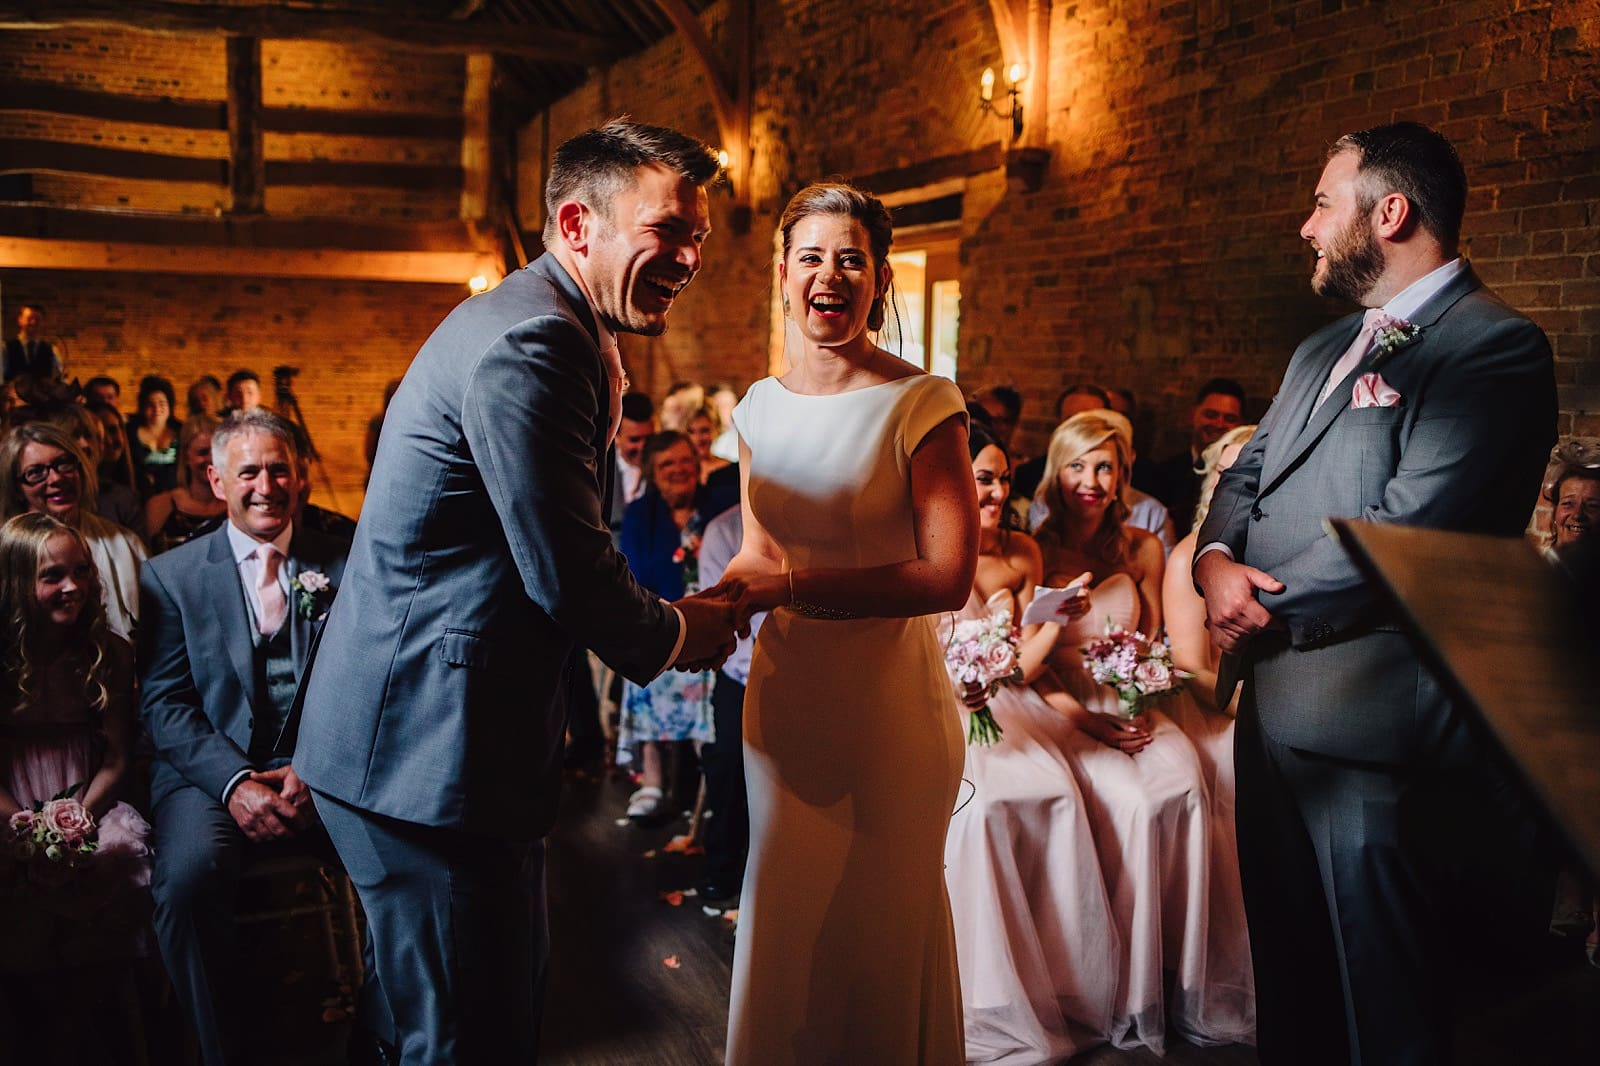 Dovecote barn adderbury wedding photography 049